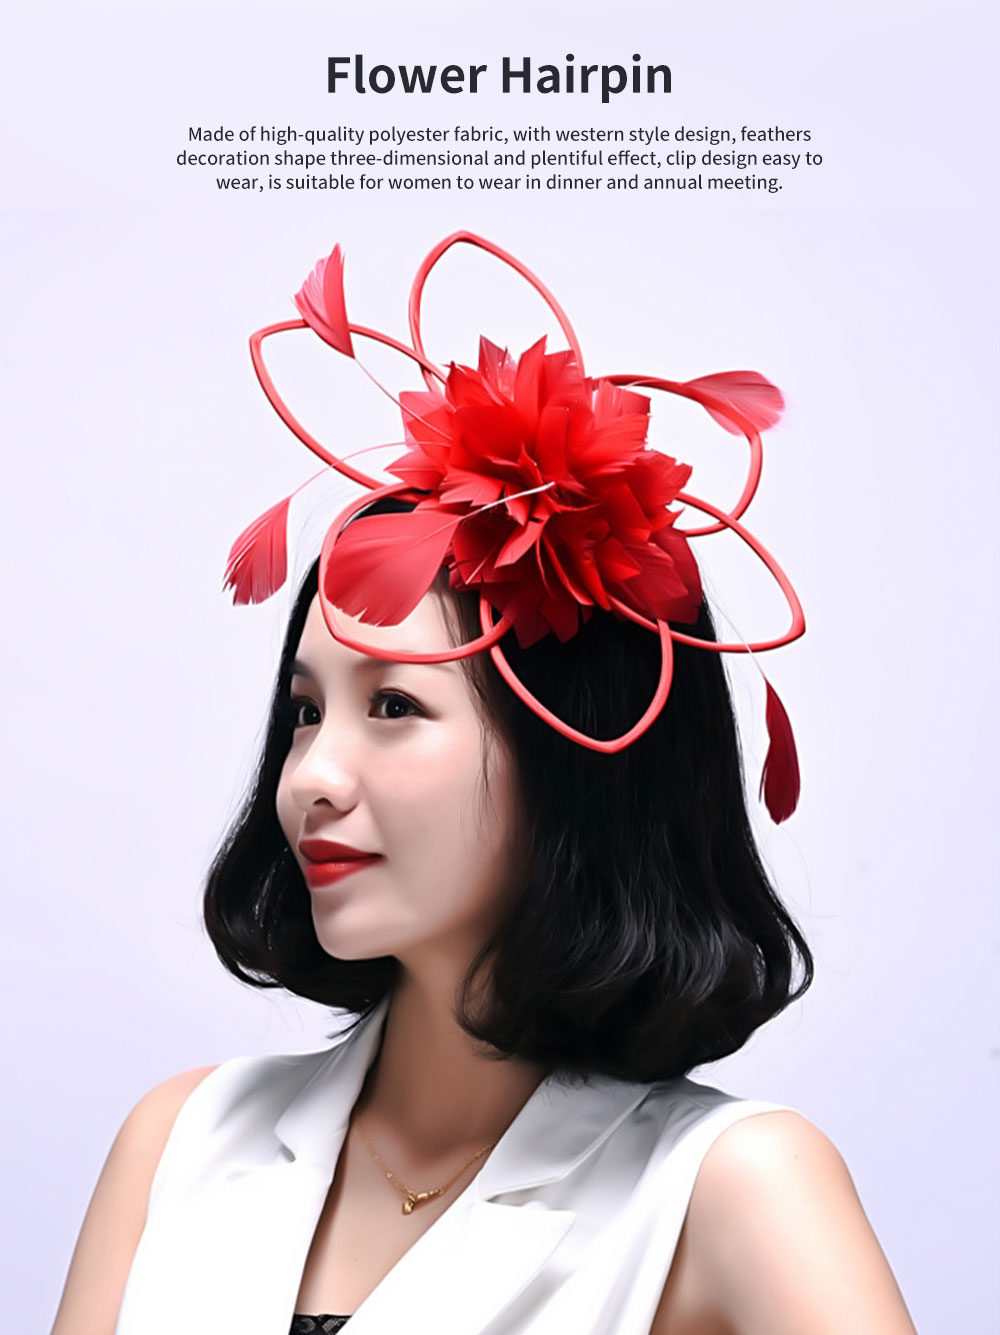 Flower Hairpin for Dinner and Annual Meeting Clip Design Western Style Feathers Decoration Plentiful Ultralight Hat 0